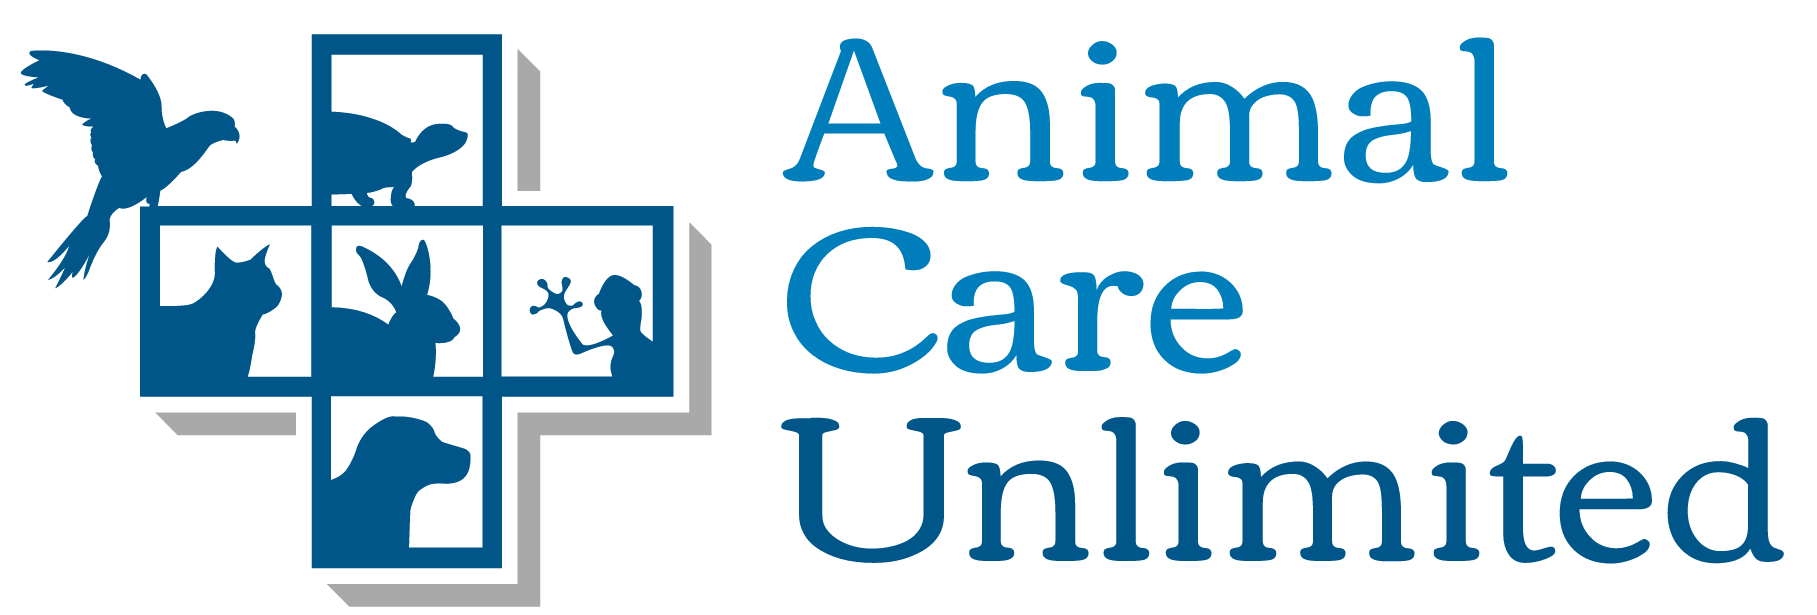 Animal Care Unlimited